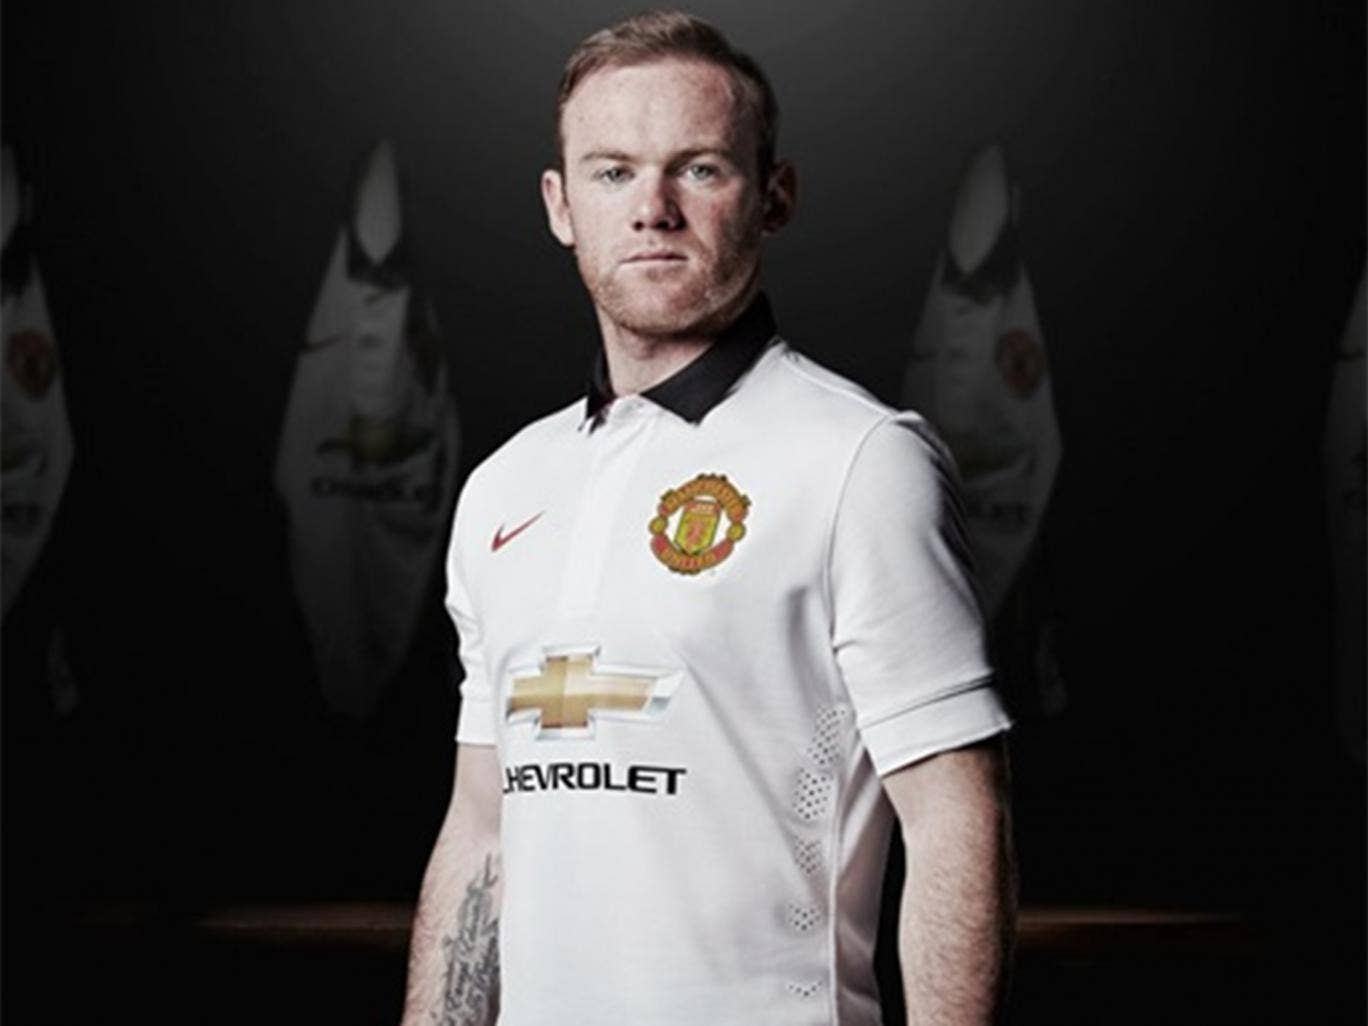 rooney manchester united jersey nike | Challenge